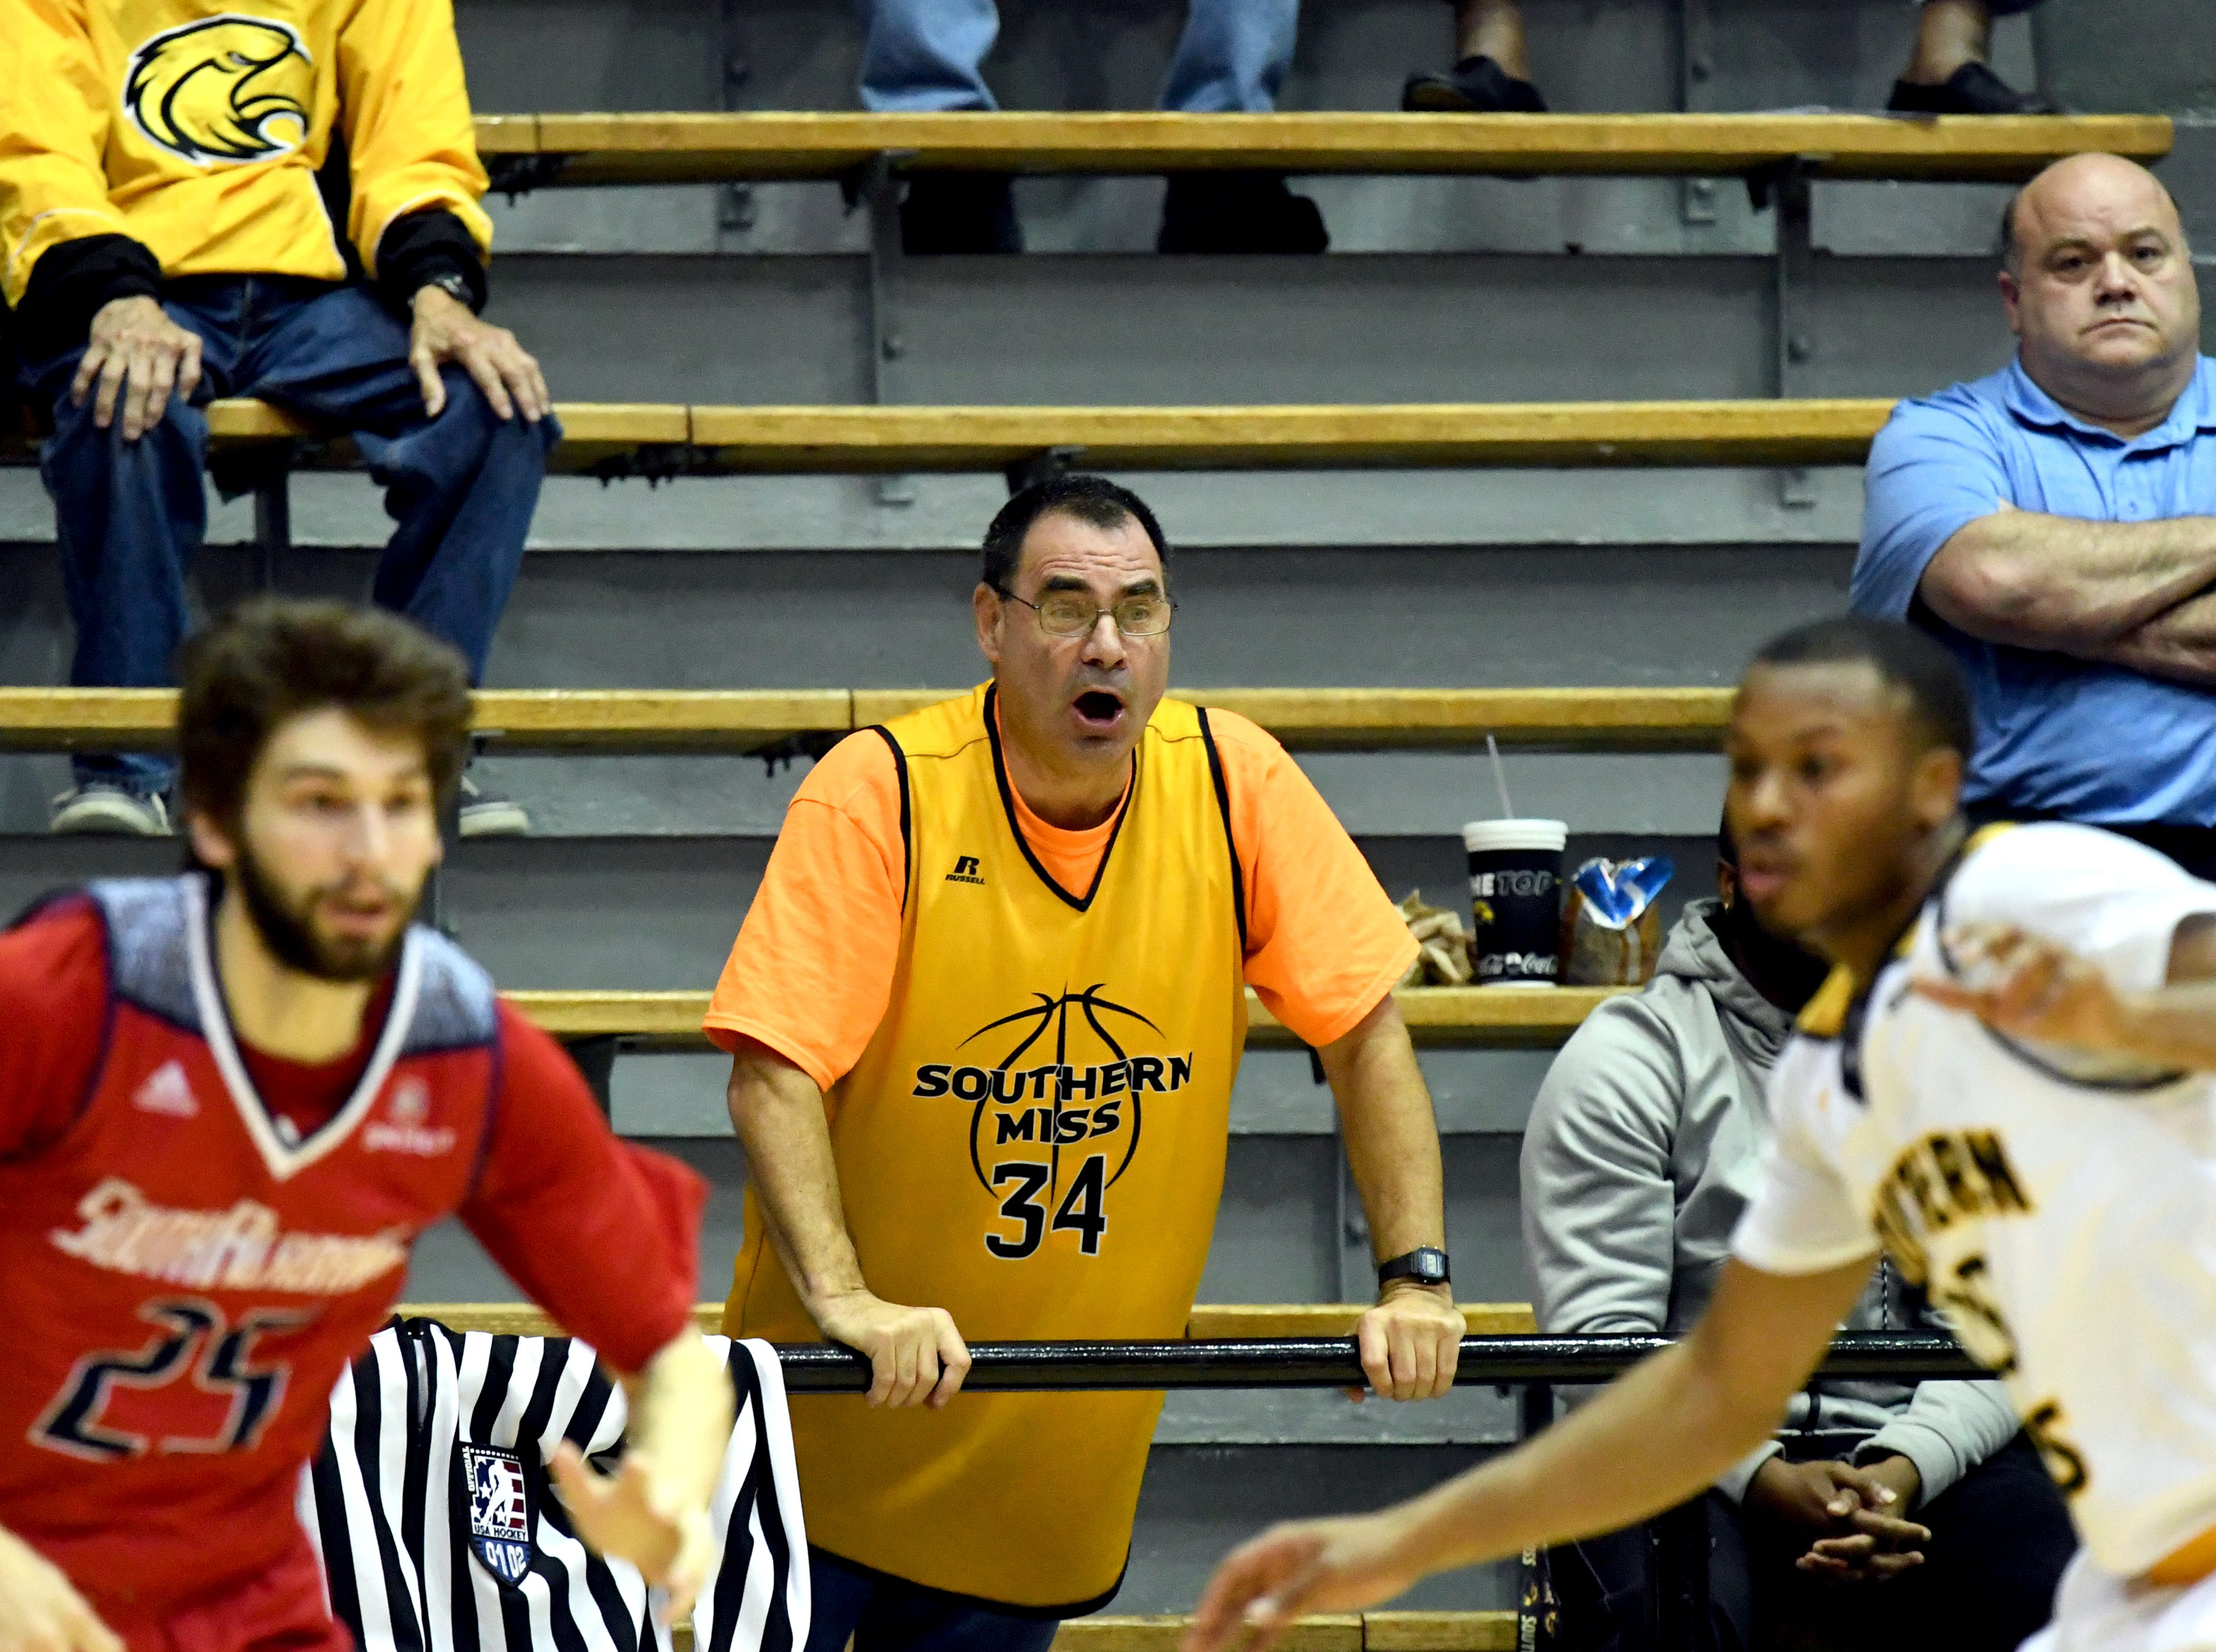 A Southern Miss fan cheers on his team in a game against South Alabama in Reed Green Coliseum on Wednesday, November 28, 2018.